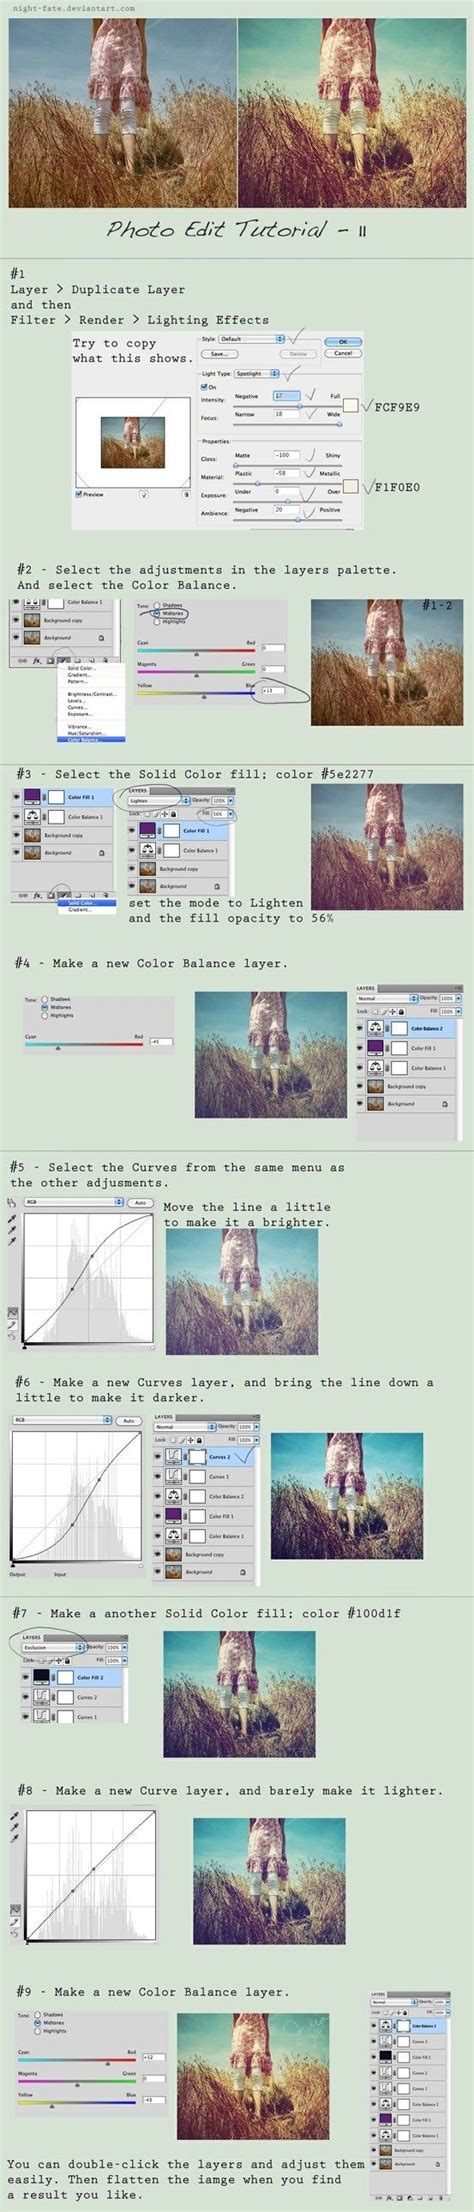 tutorial edit foto vintage great tutorial on editing photos for a vintage look by